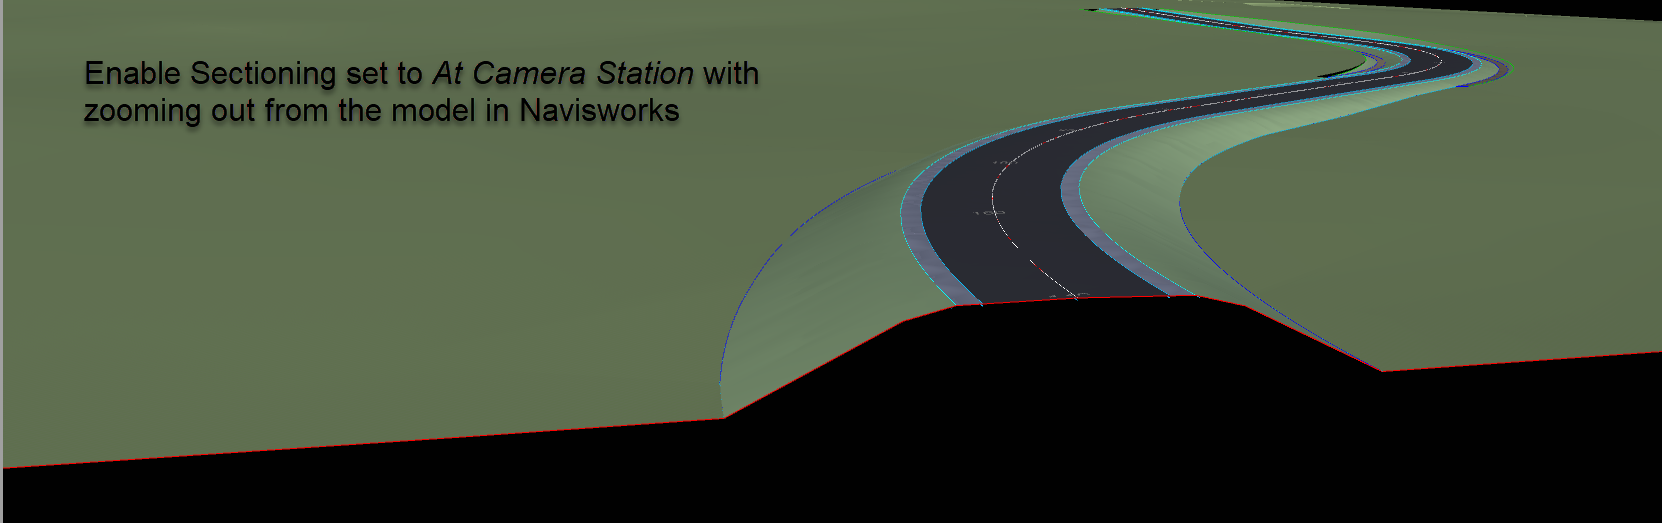 21 SEP 14 Navisworks Views for Civil 3D 6 enable sectioning set to at camera station with zooming out from the model in navisworks